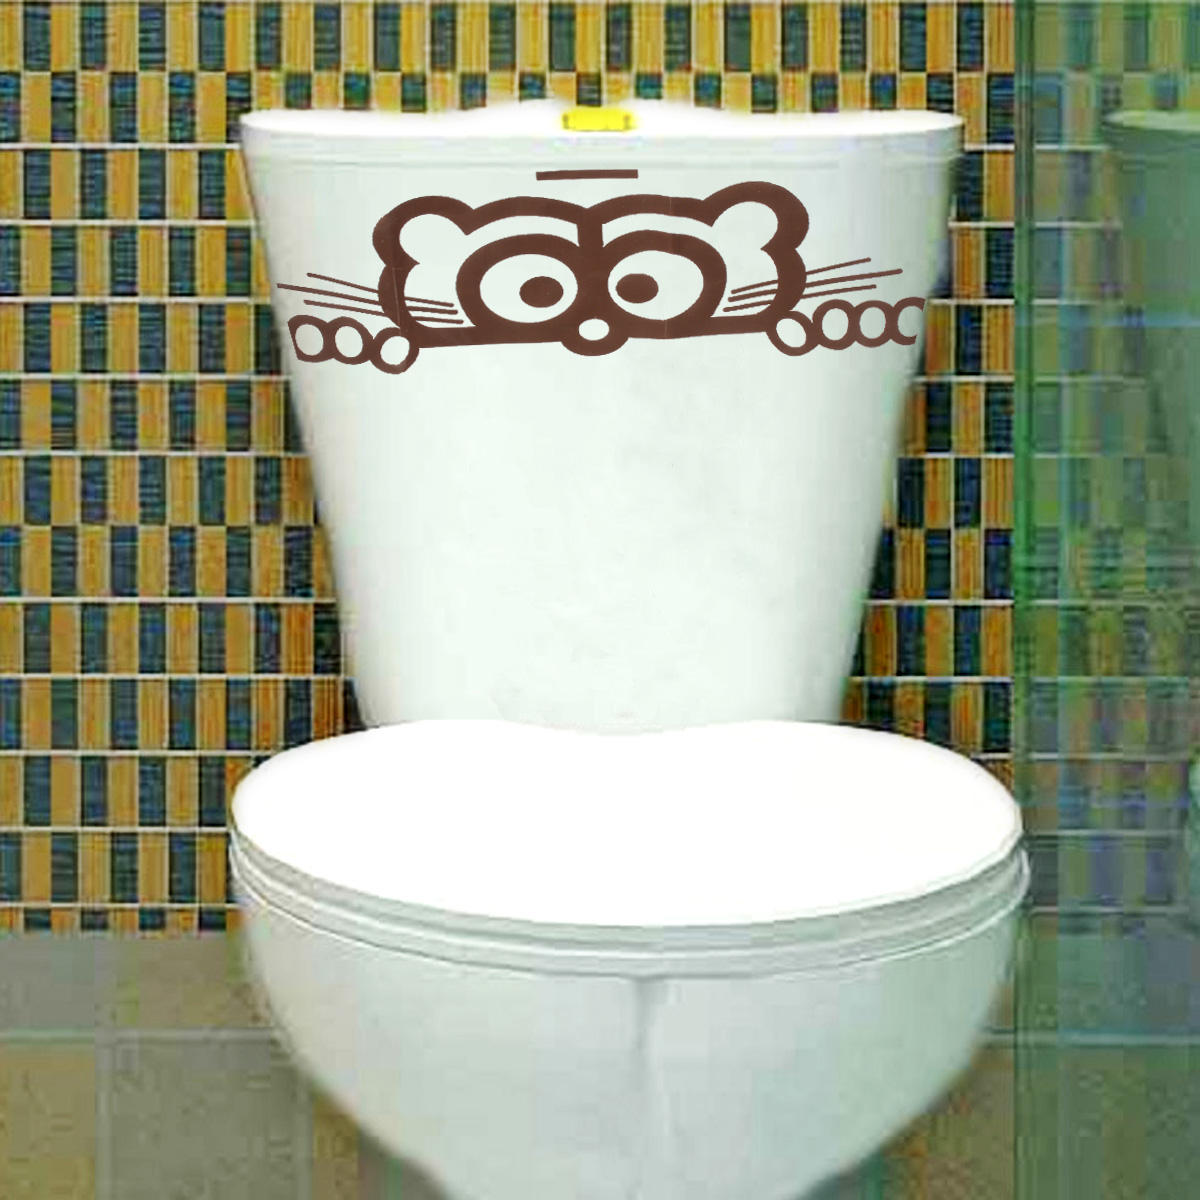 Wandtattoo Tapete Wall Sticker Wc Peeping Wc Sitz Decals Wandtattoo Tapete Entfernbare Dekor